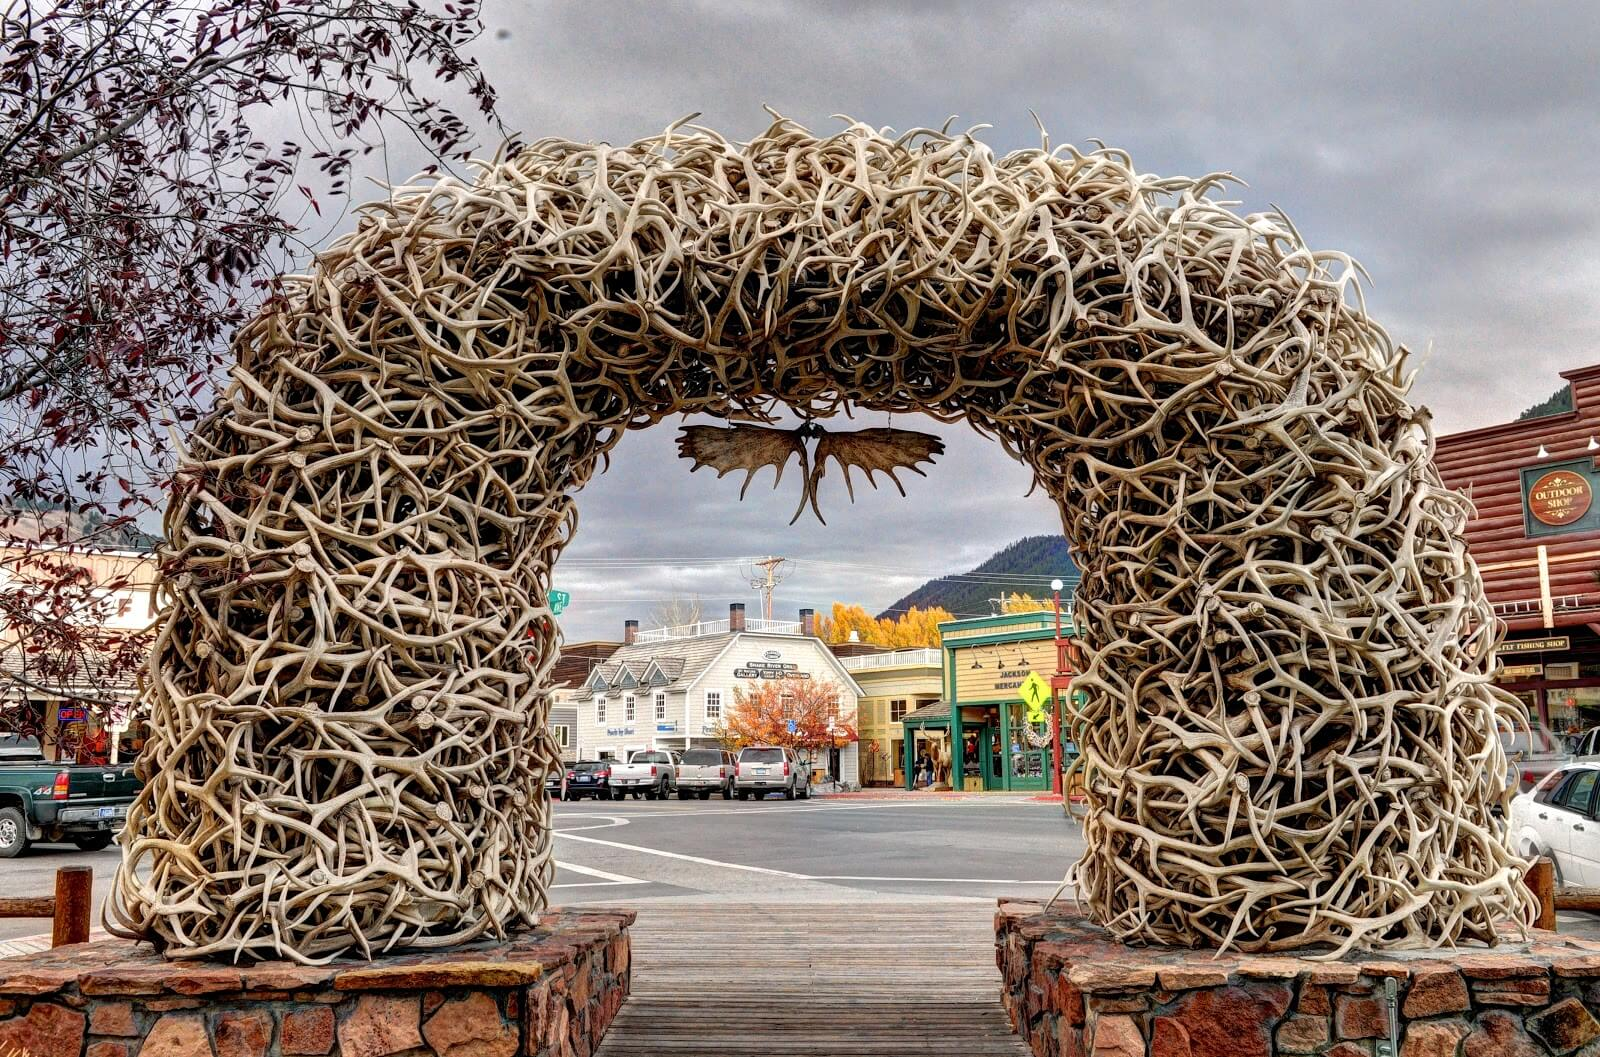 Jackson Hole must see spots include the Antler Arches in downtown Jackson.